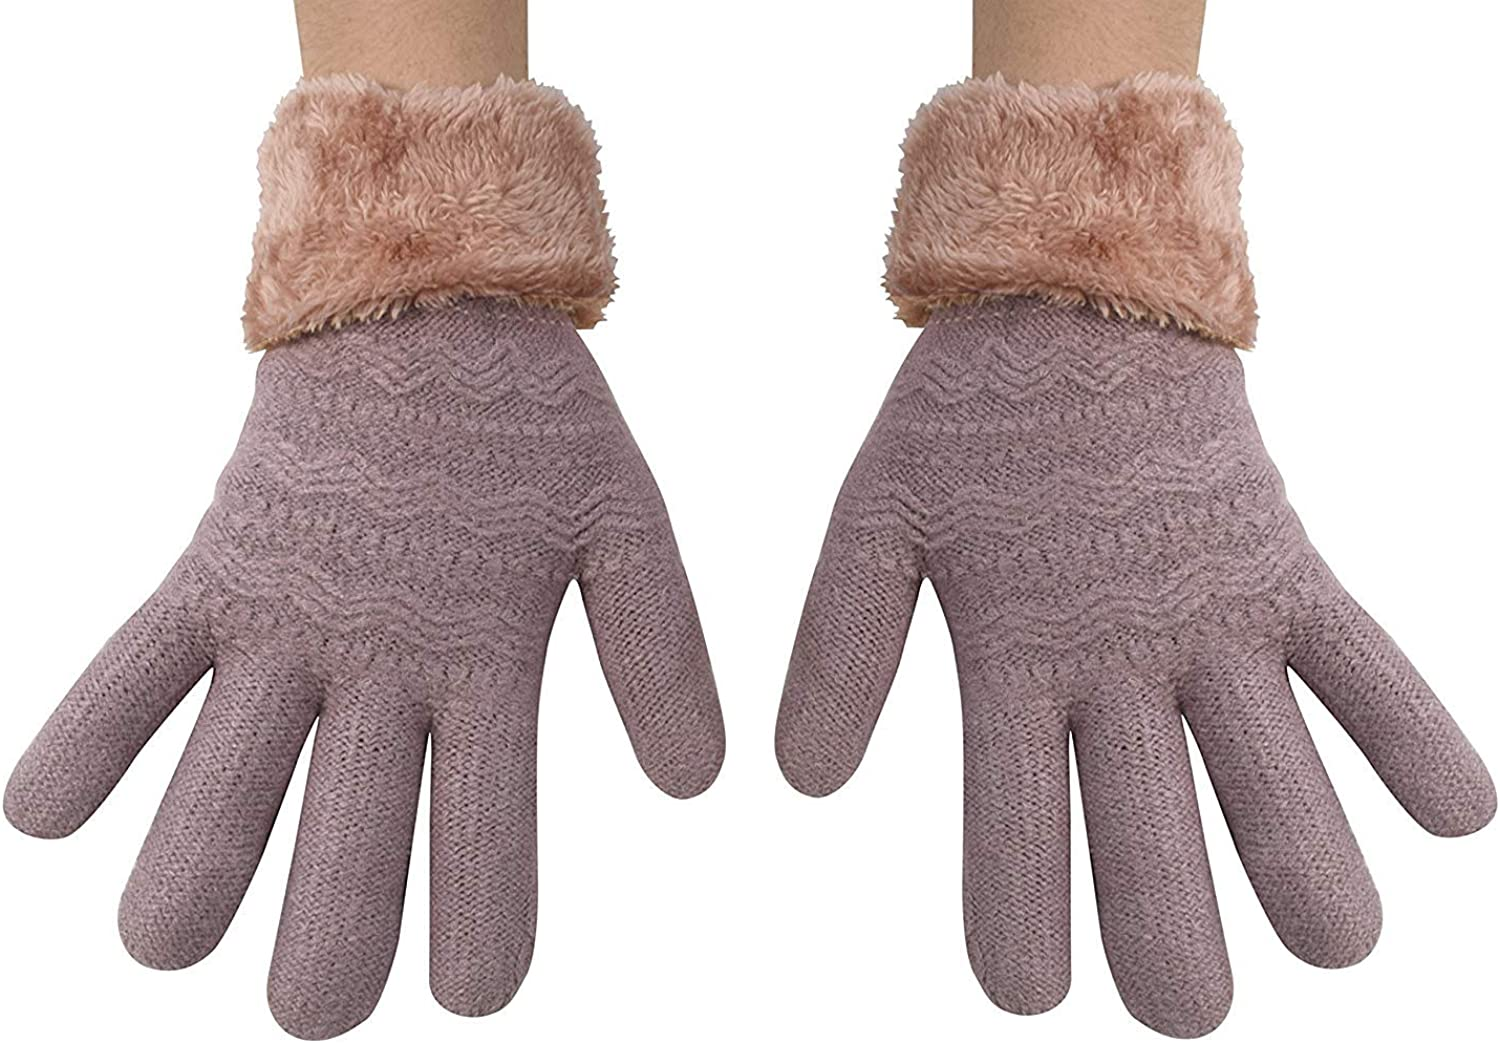 Peach Couture Classic Cable Knit Plush Fleece Lined Double Layer Winter Gloves (One Size, Mauve 05)